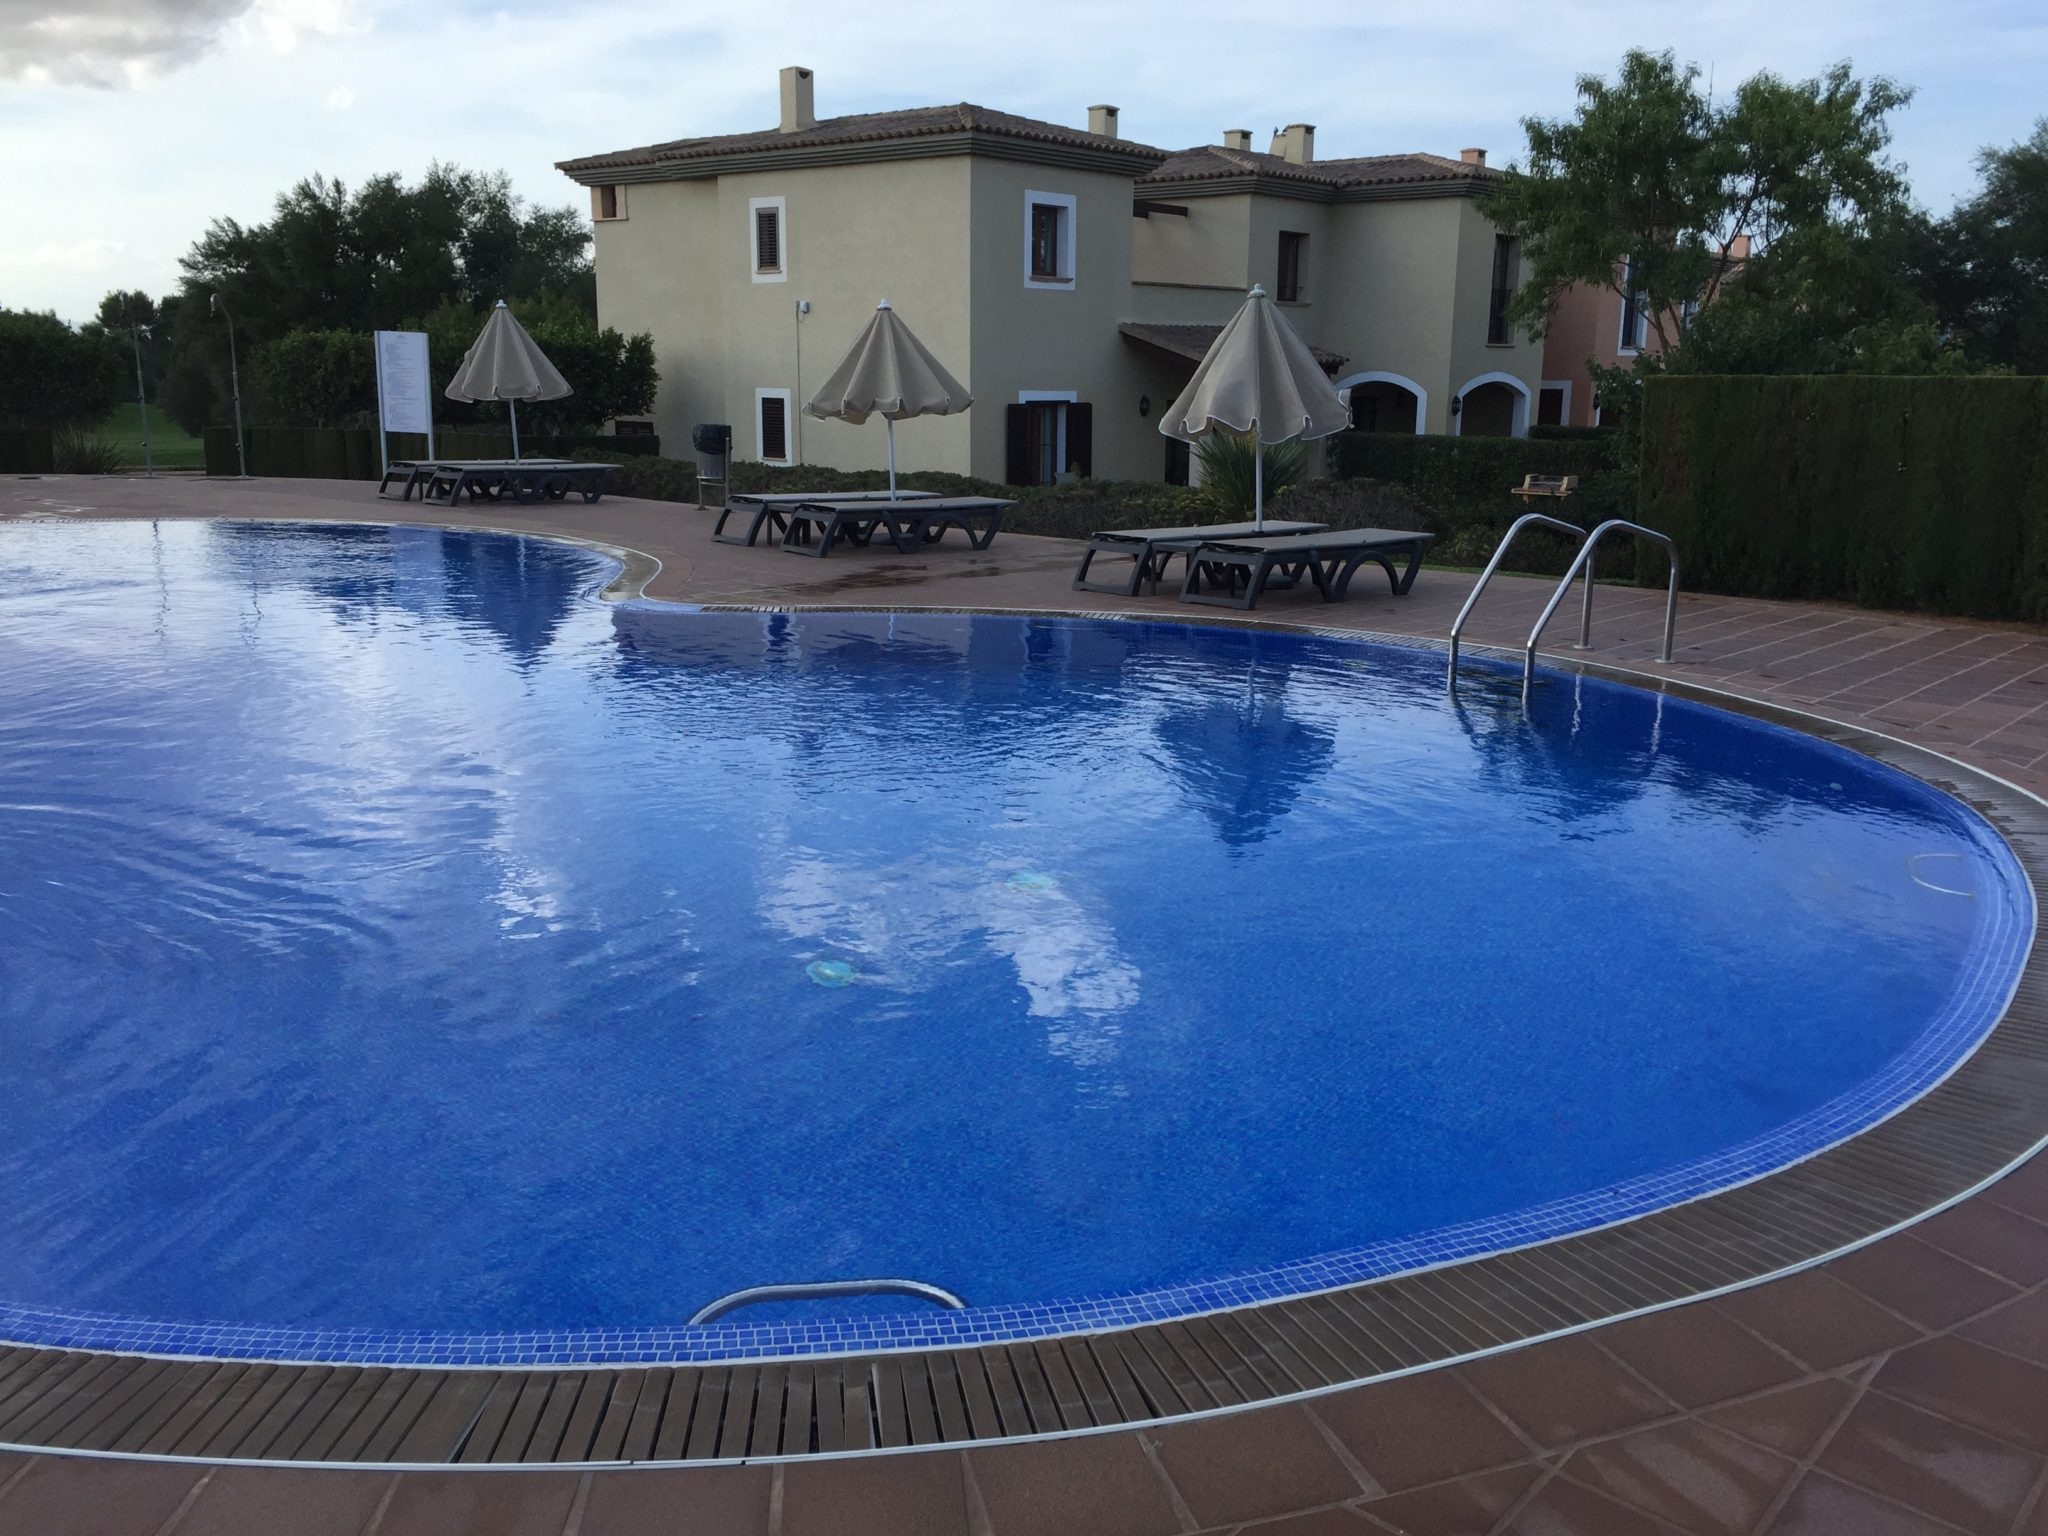 Townhouse and Splash pool - near to Golf Course